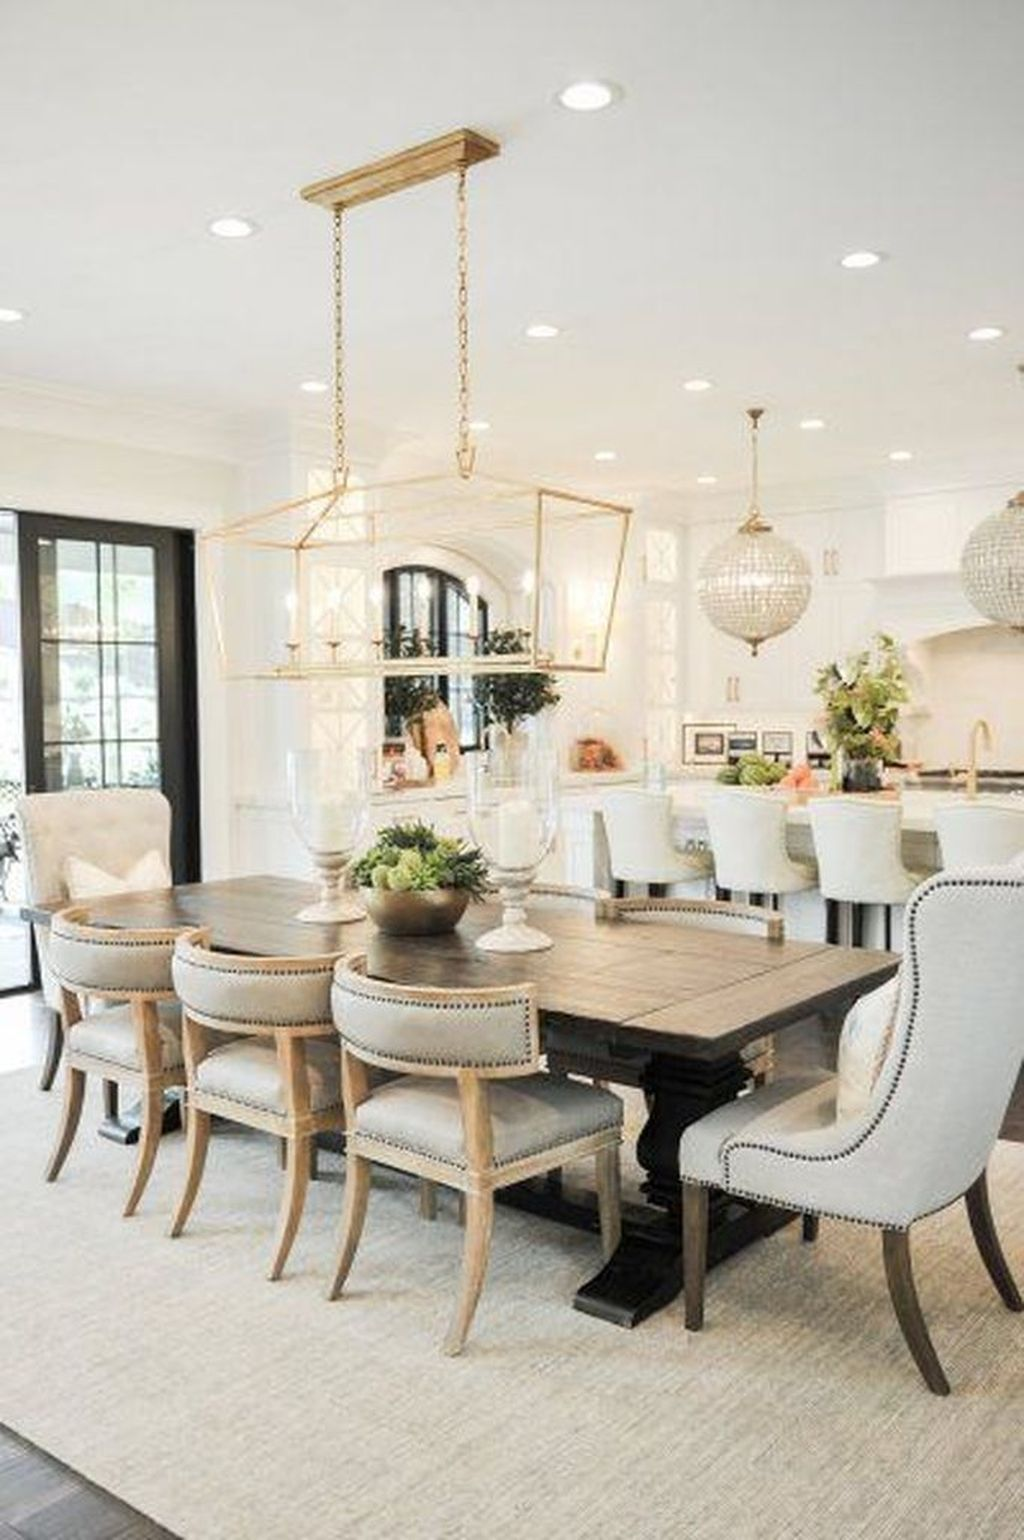 Brick Outdoor Kitchen Ideas, 30 Fascinating Dining Room Design Ideas For Your Big Family In 2020 Modern Farmhouse Dining Modern Farmhouse Dining Room Dining Room Inspiration